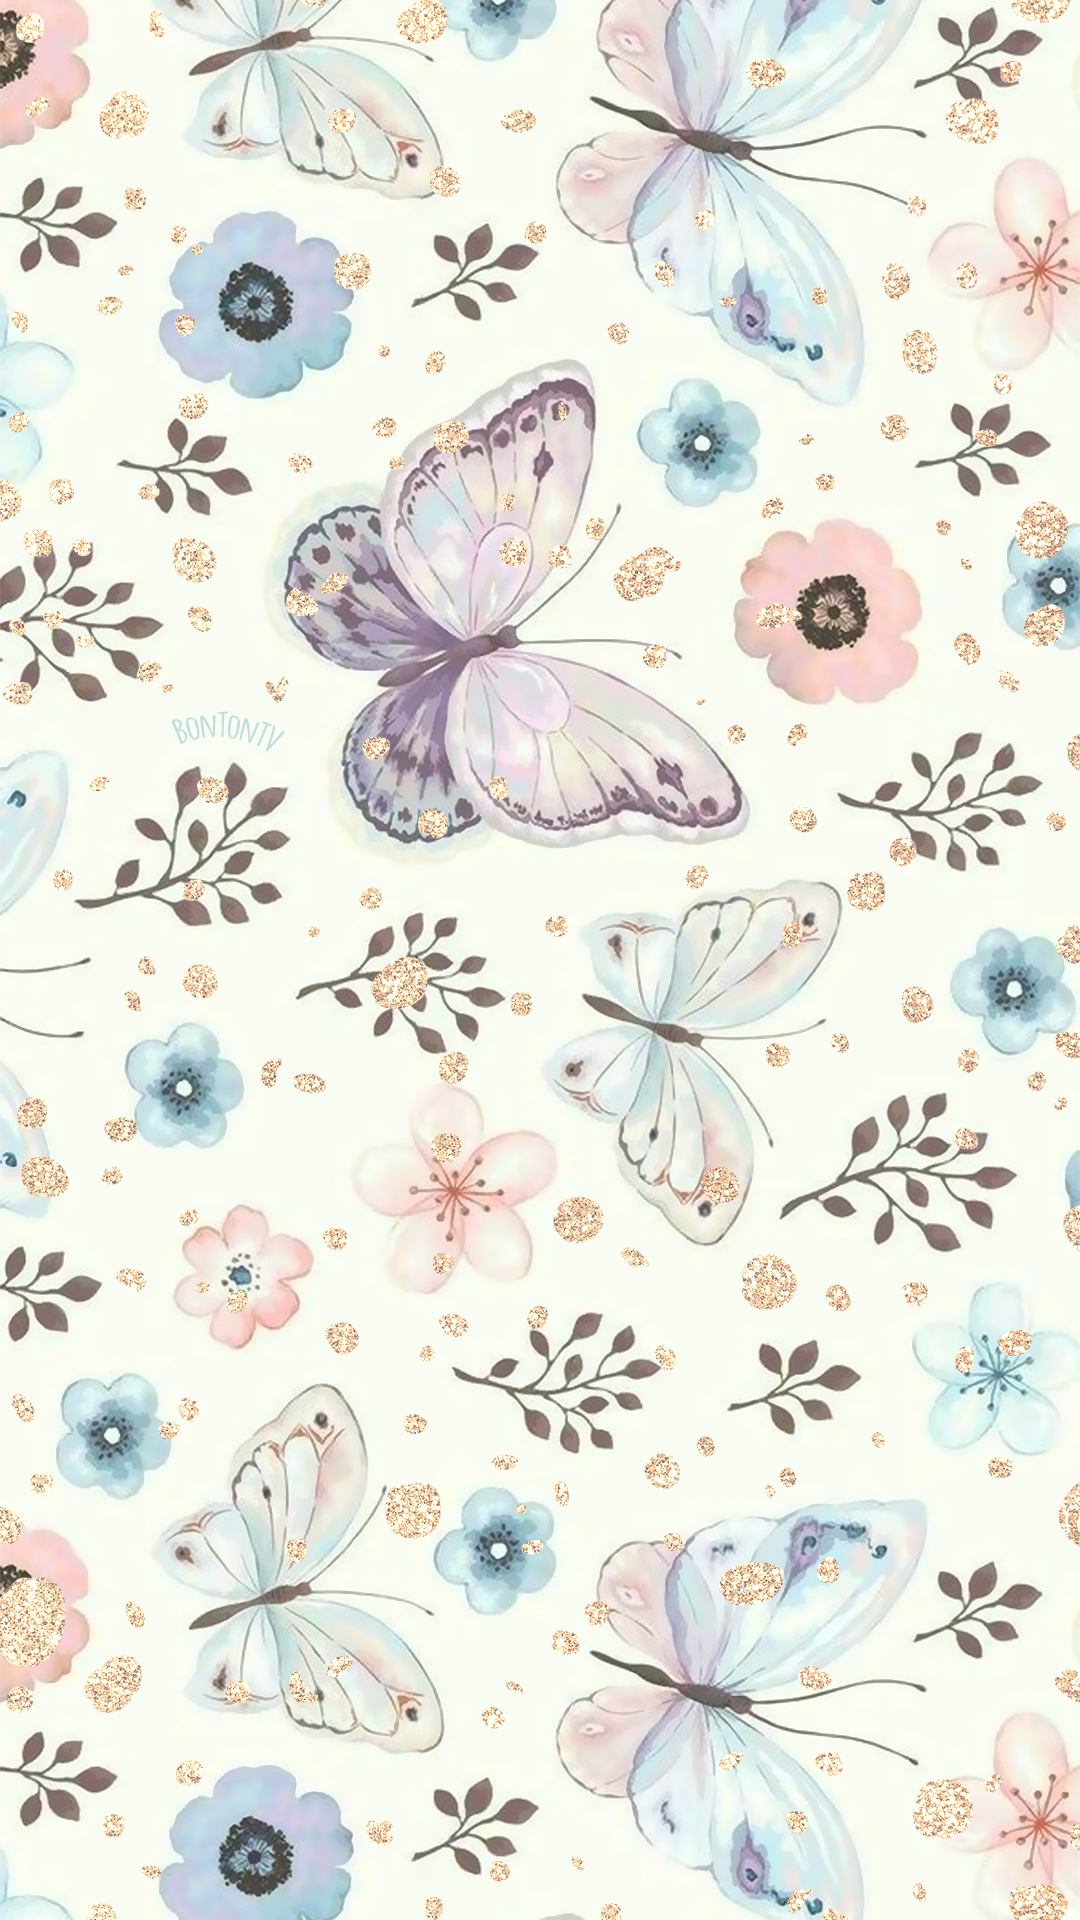 Phone Wallpapers Hd Watercolor Butterfly By Bonton Tv Free Backgrounds 1080x1920 Wallpapers Artsy Wallpaper Iphone Butterfly Watercolor Butterfly Wallpaper